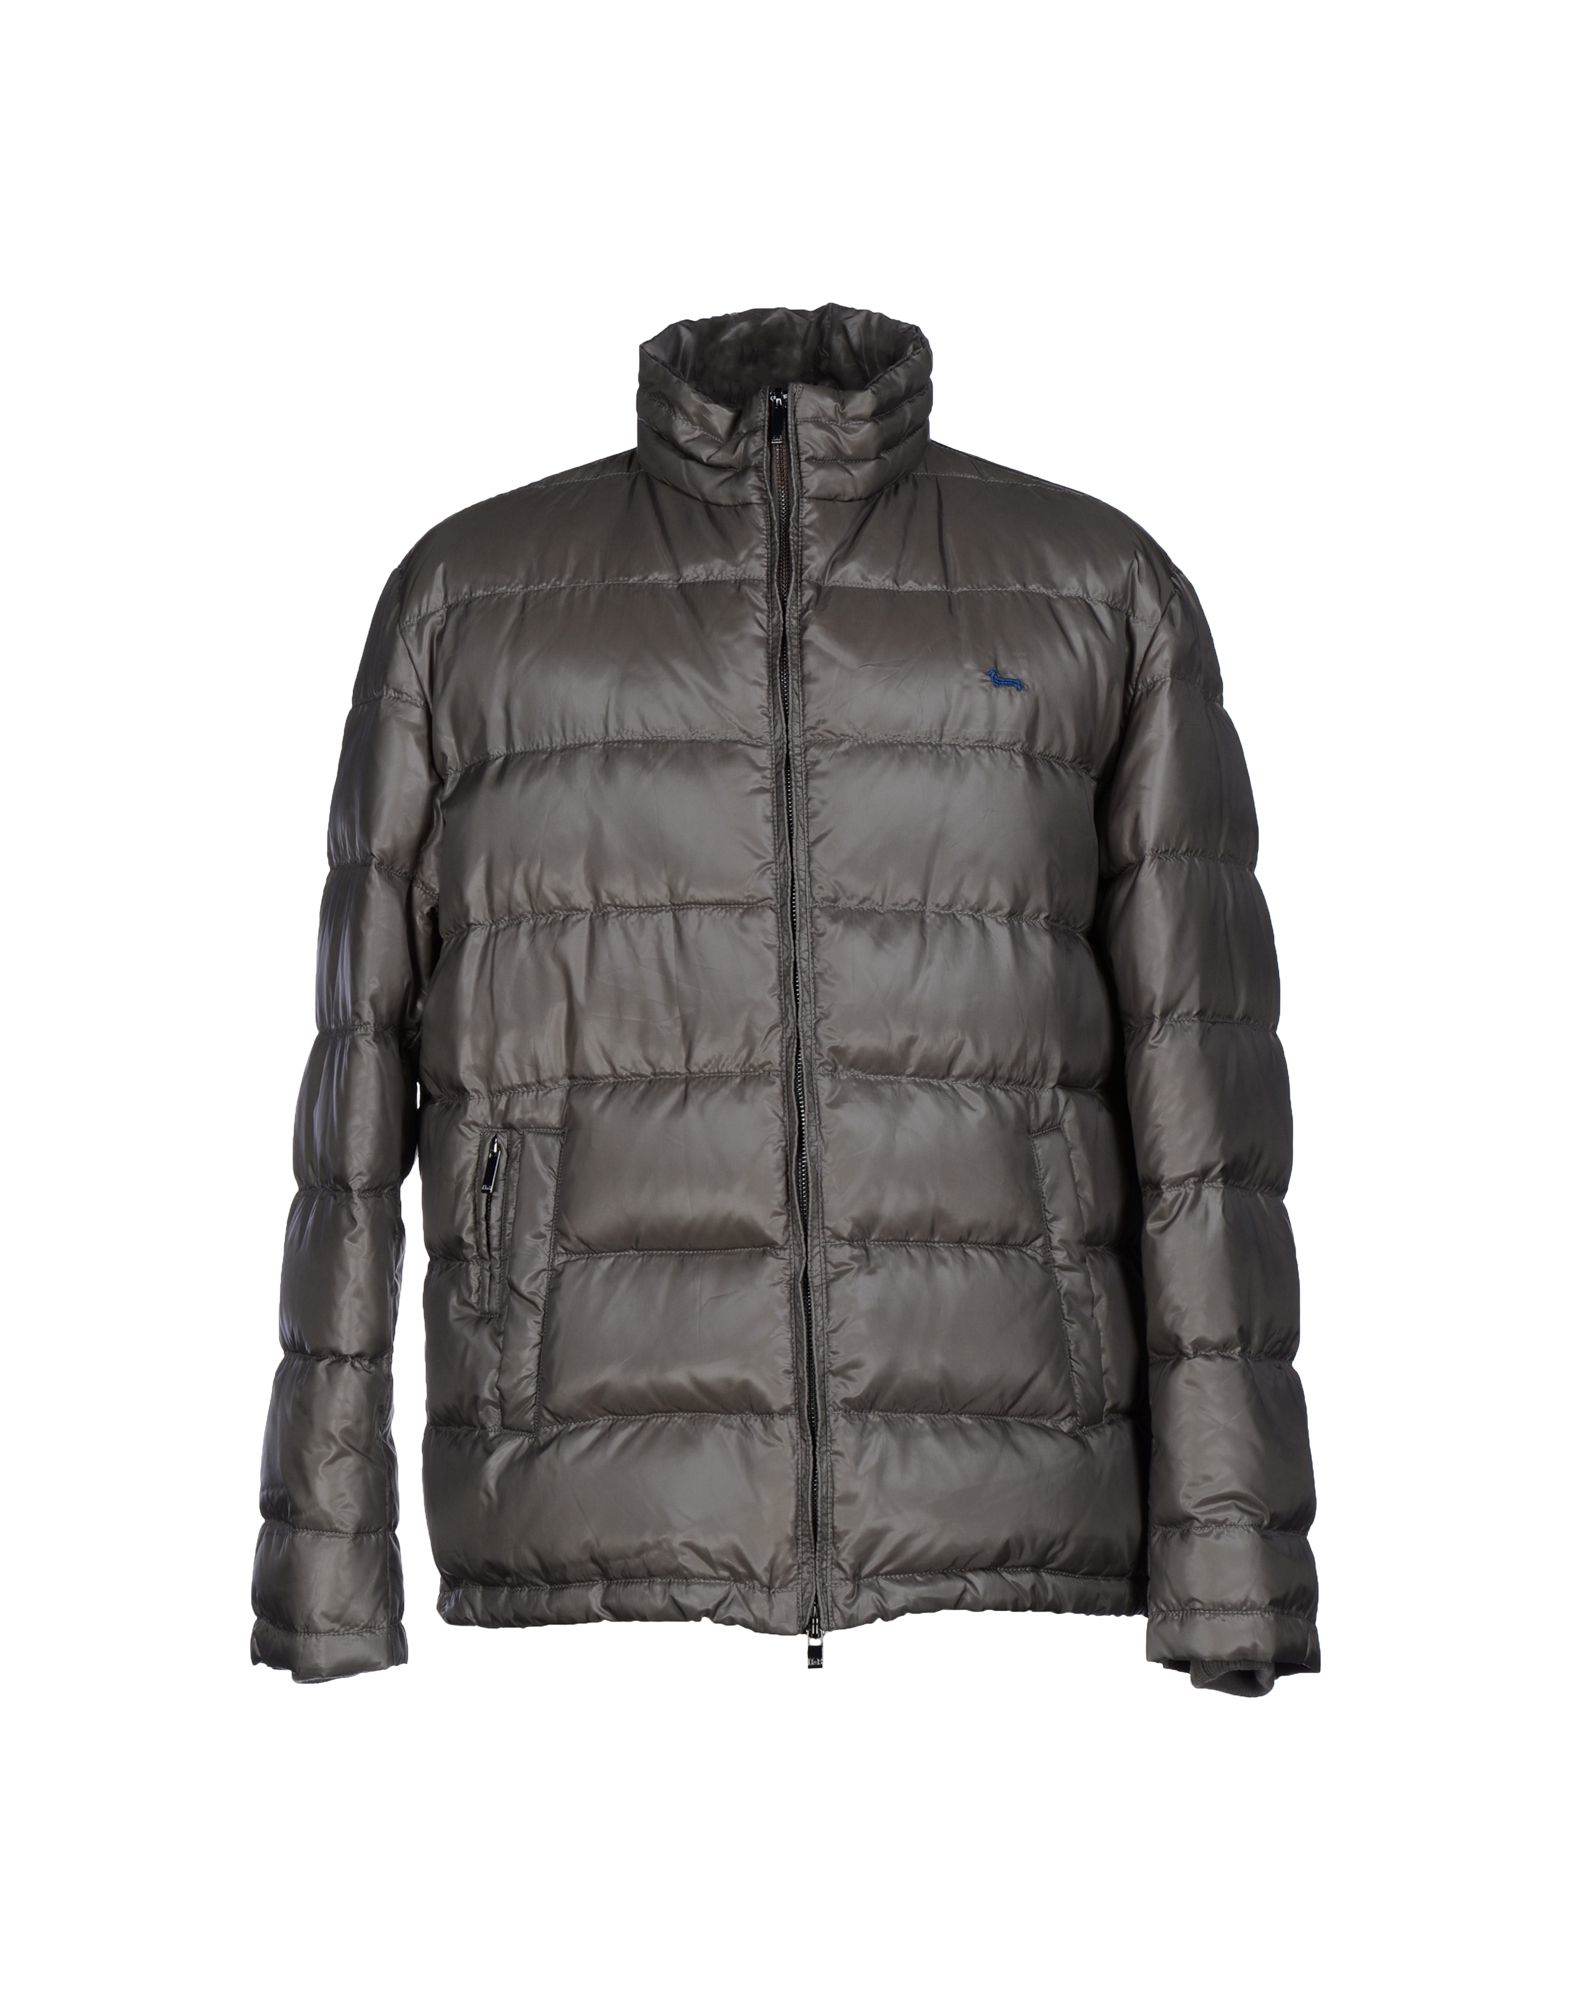 COATS & JACKETS - Jackets Harmont & Blaine Free Shipping For Nice Clearance Hot Sale Cheap Sale Extremely Buy Cheap 2018 Unisex Clearance Websites 4rLEZ4I